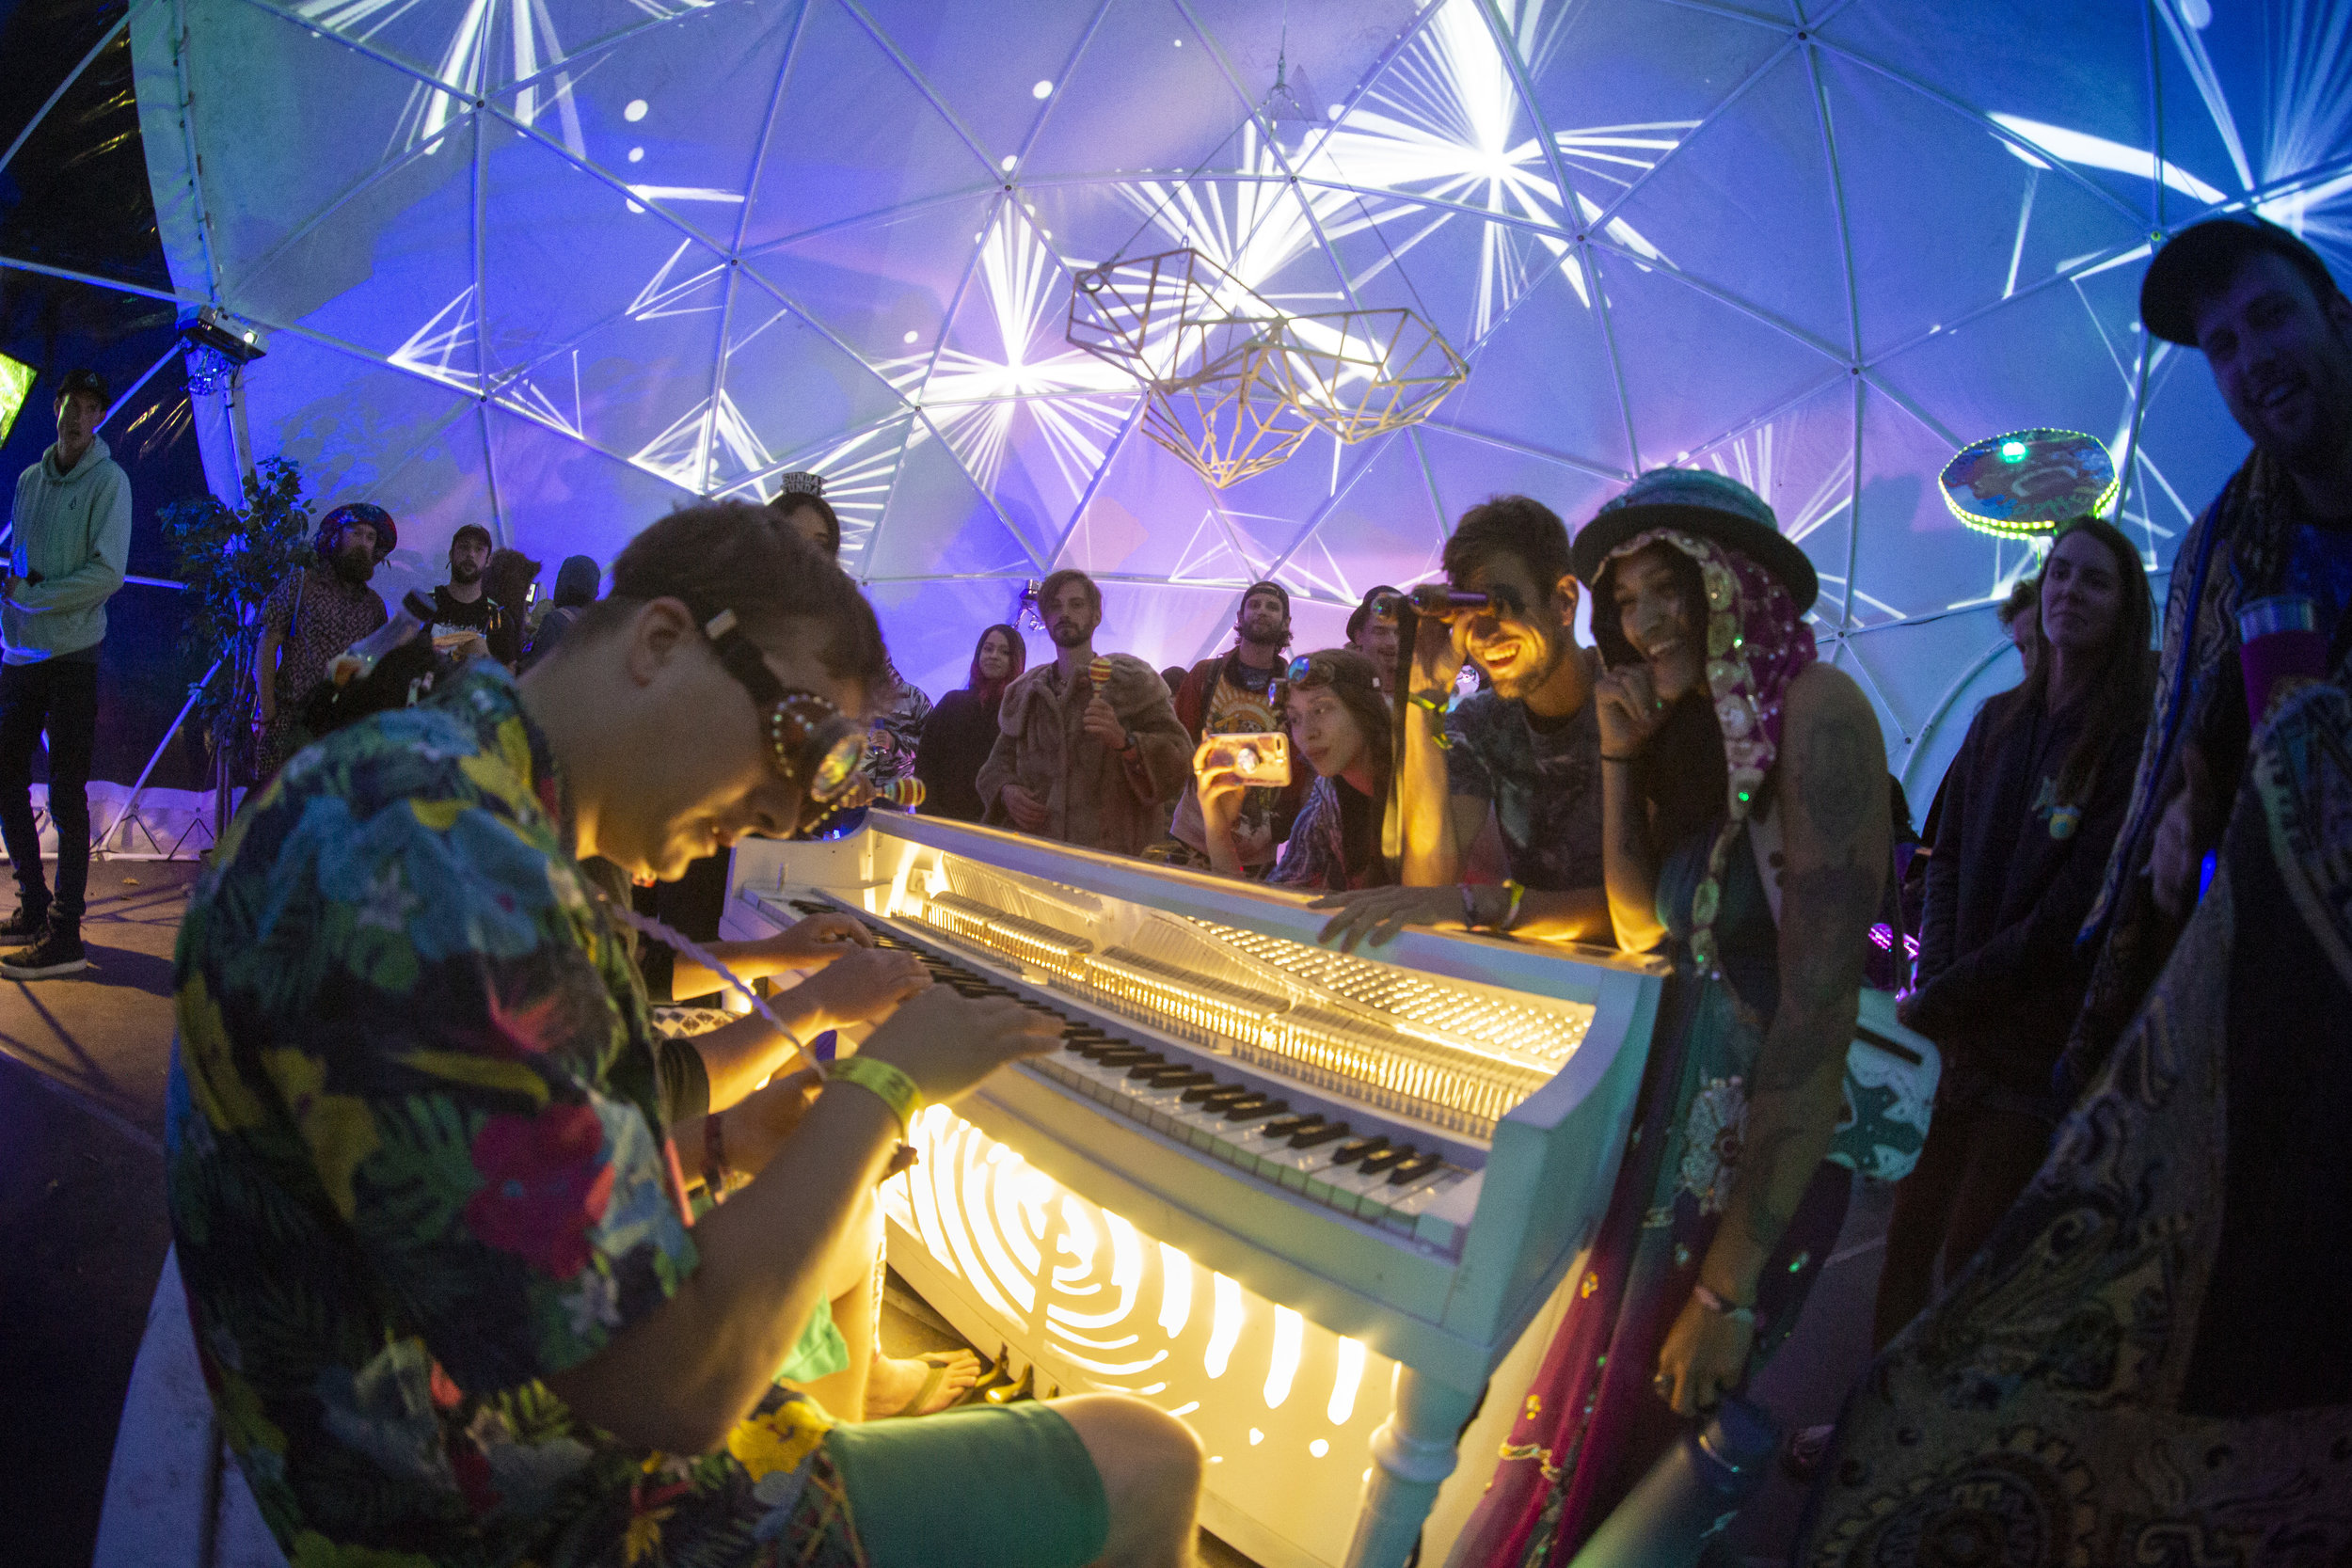 Sensebellum Summer Meltdown Music Festival Pacific Northwest Creative Lighting Event Studio Art Installation Geodesic Sensatorium 55.jpg